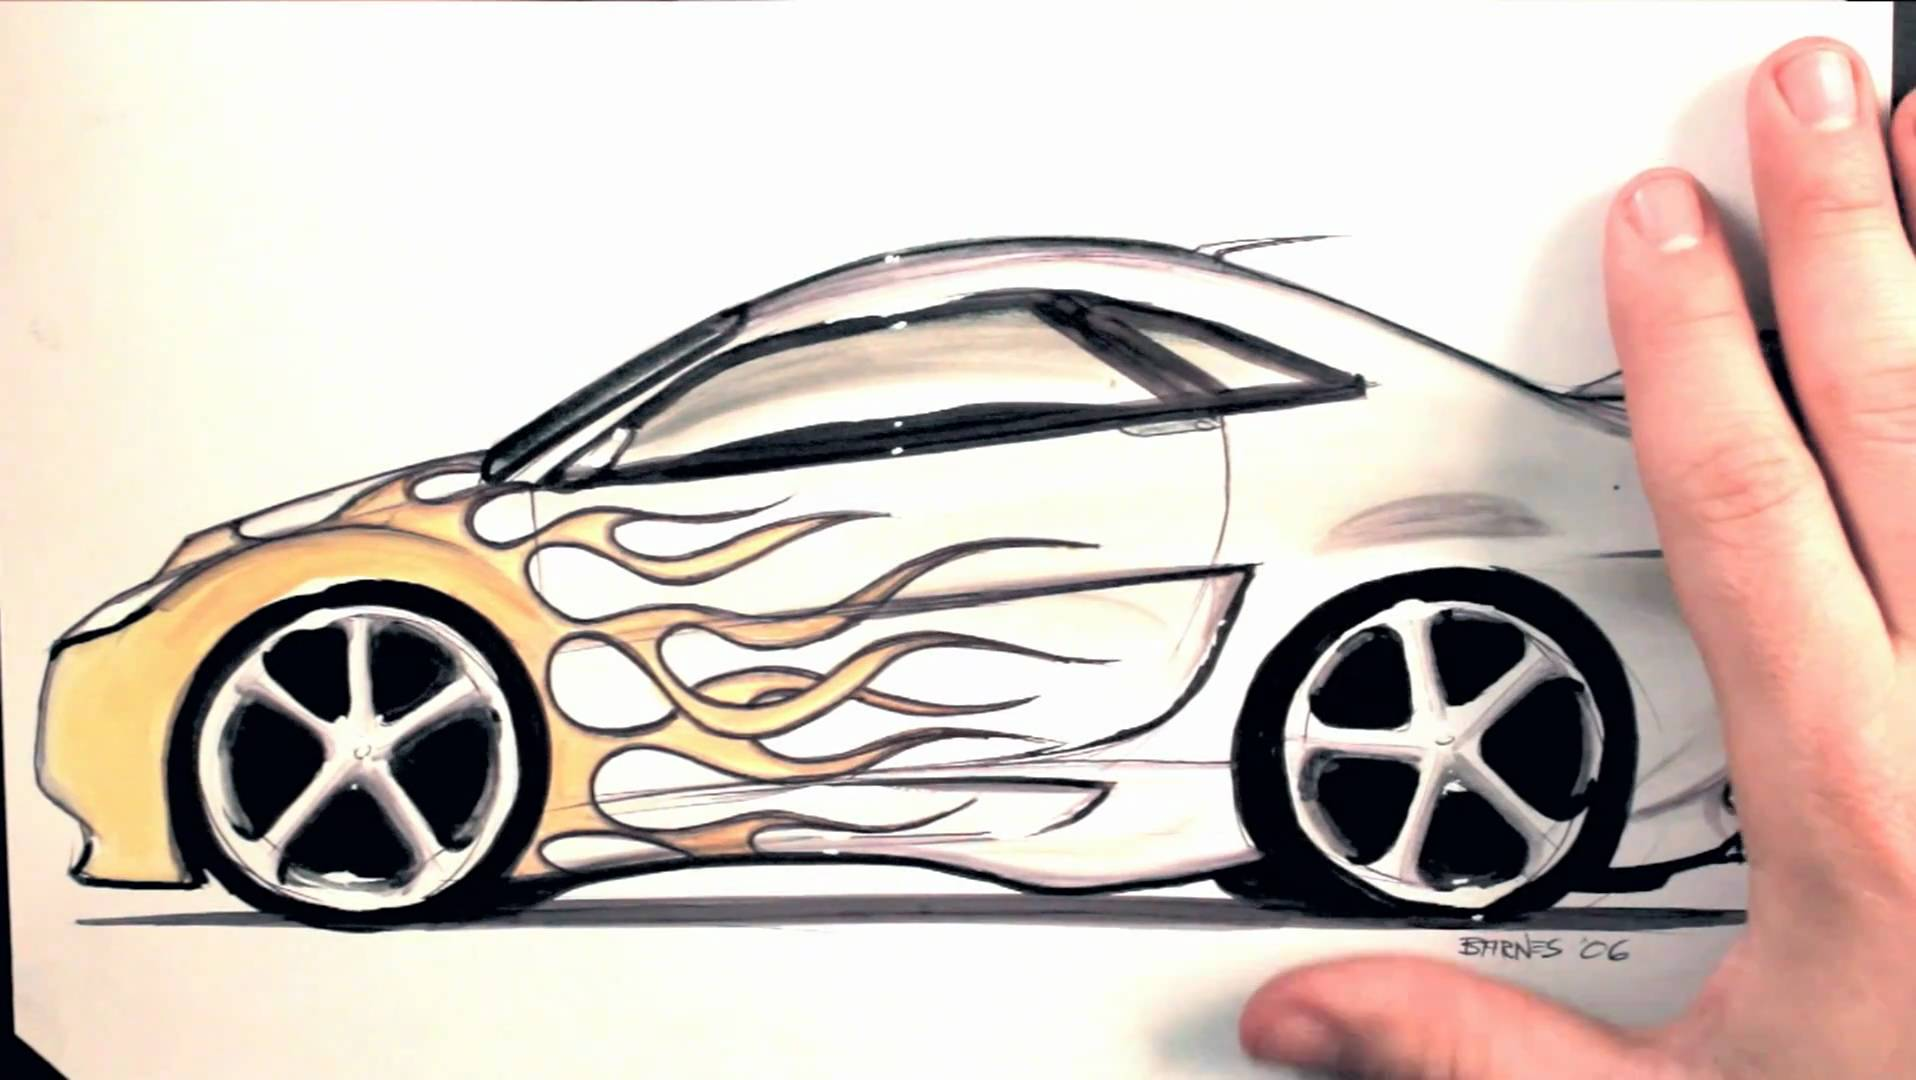 Drawn vehicle tuned car You How'd That? Tuner You